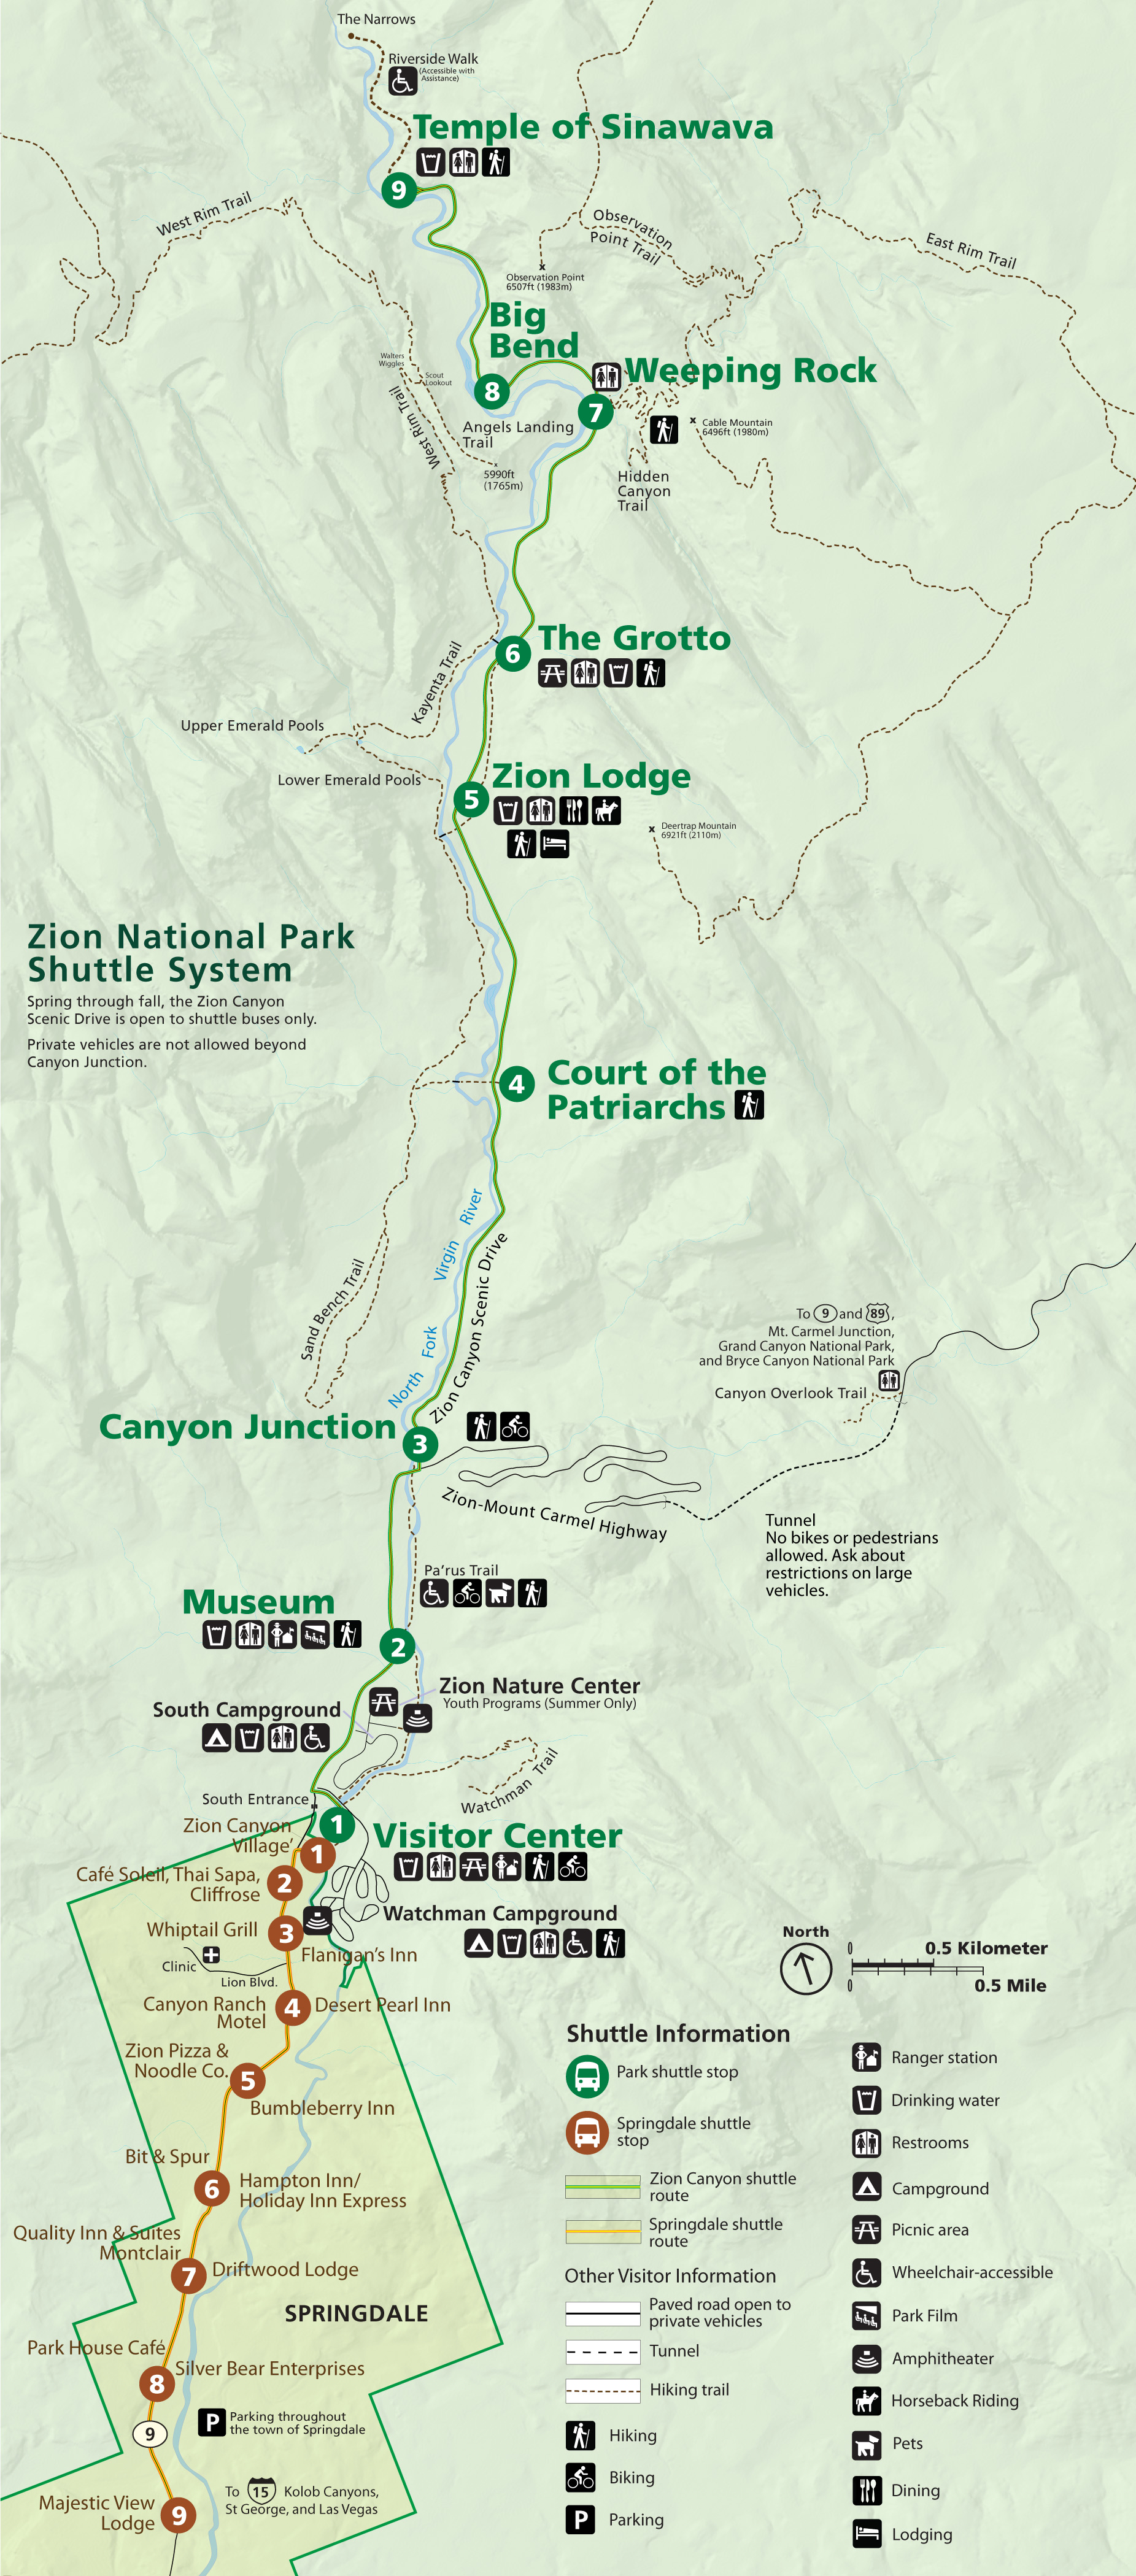 How to VISIT ZION NATIONAL PARK - Travel guide and tips Zion National Park Utah Map on labyrinth canyon utah map, lee's ferry utah map, devil's playground utah map, mesa arch utah map, paria canyon utah map, arches national park map, little wild horse canyon utah map, kodachrome basin state park utah map, dead horse point utah map, grand staircase escalante utah map, ohio historical markers map, natural bridges national monument utah map, kolob canyon utah map, yosemite national park map, cedar breaks national monument utah map, pink cliffs utah map, south rim utah map, hiking utah map, united states utah map, capitol reef utah map,